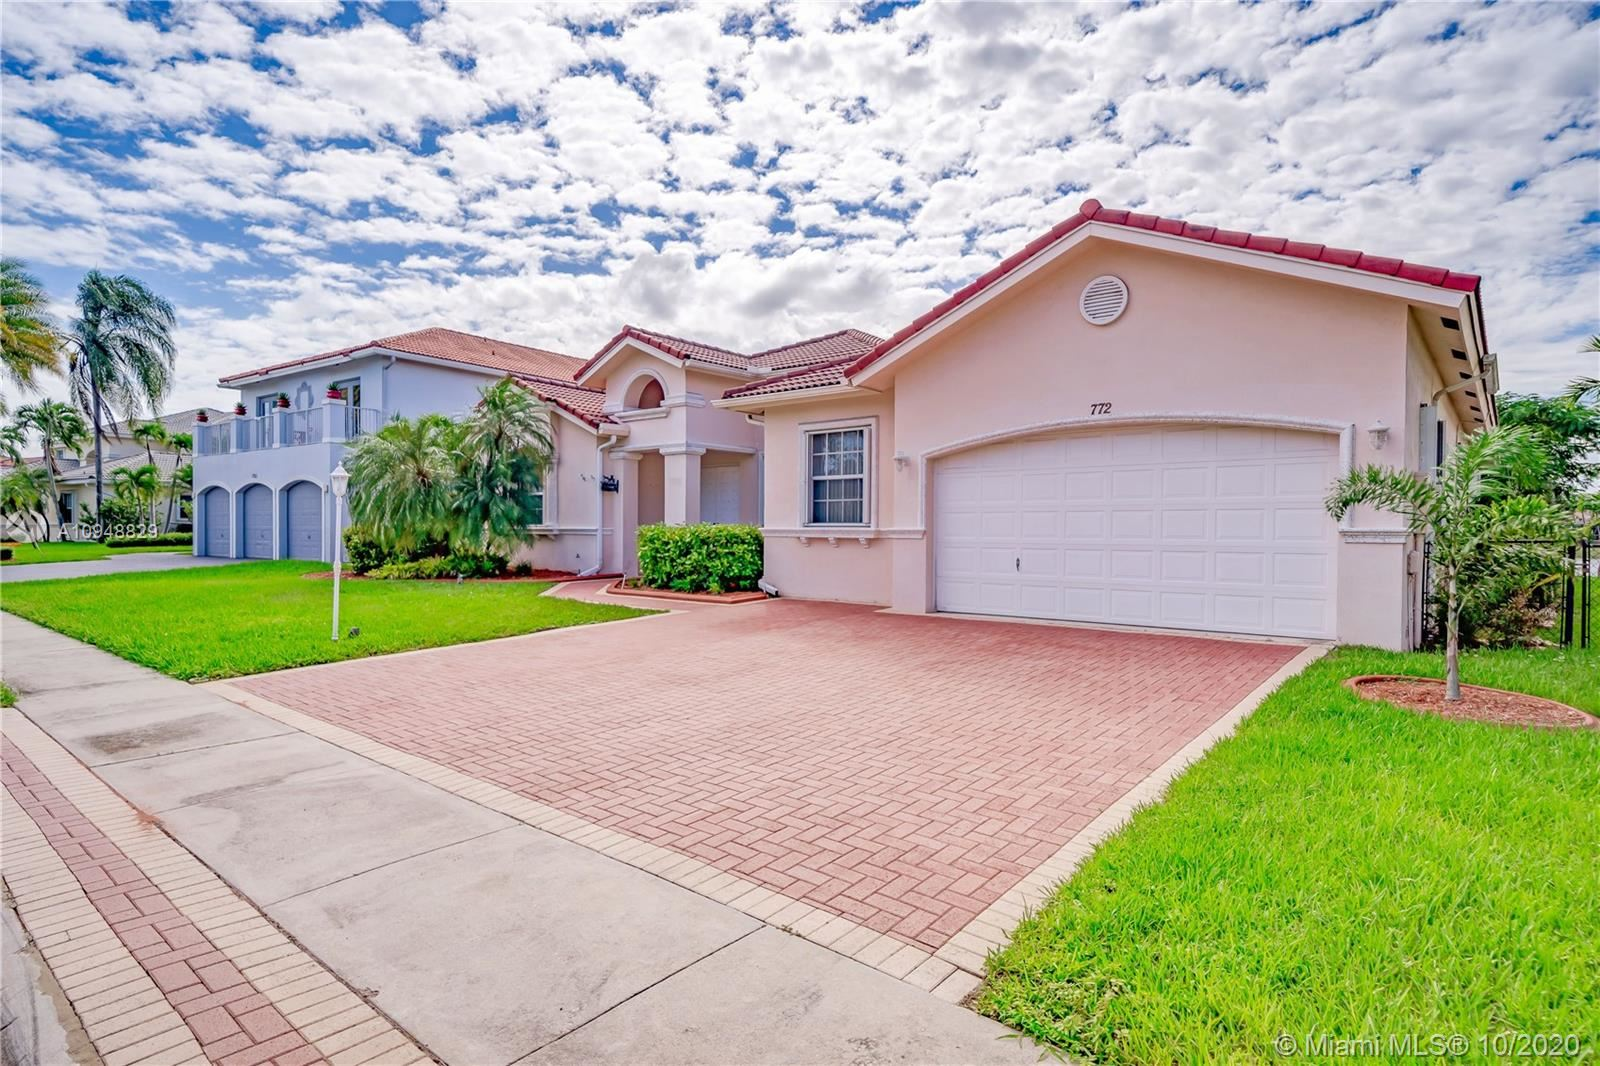 772 SW 159th Dr, Pembroke Pines, FL 33027 - #: A10948829